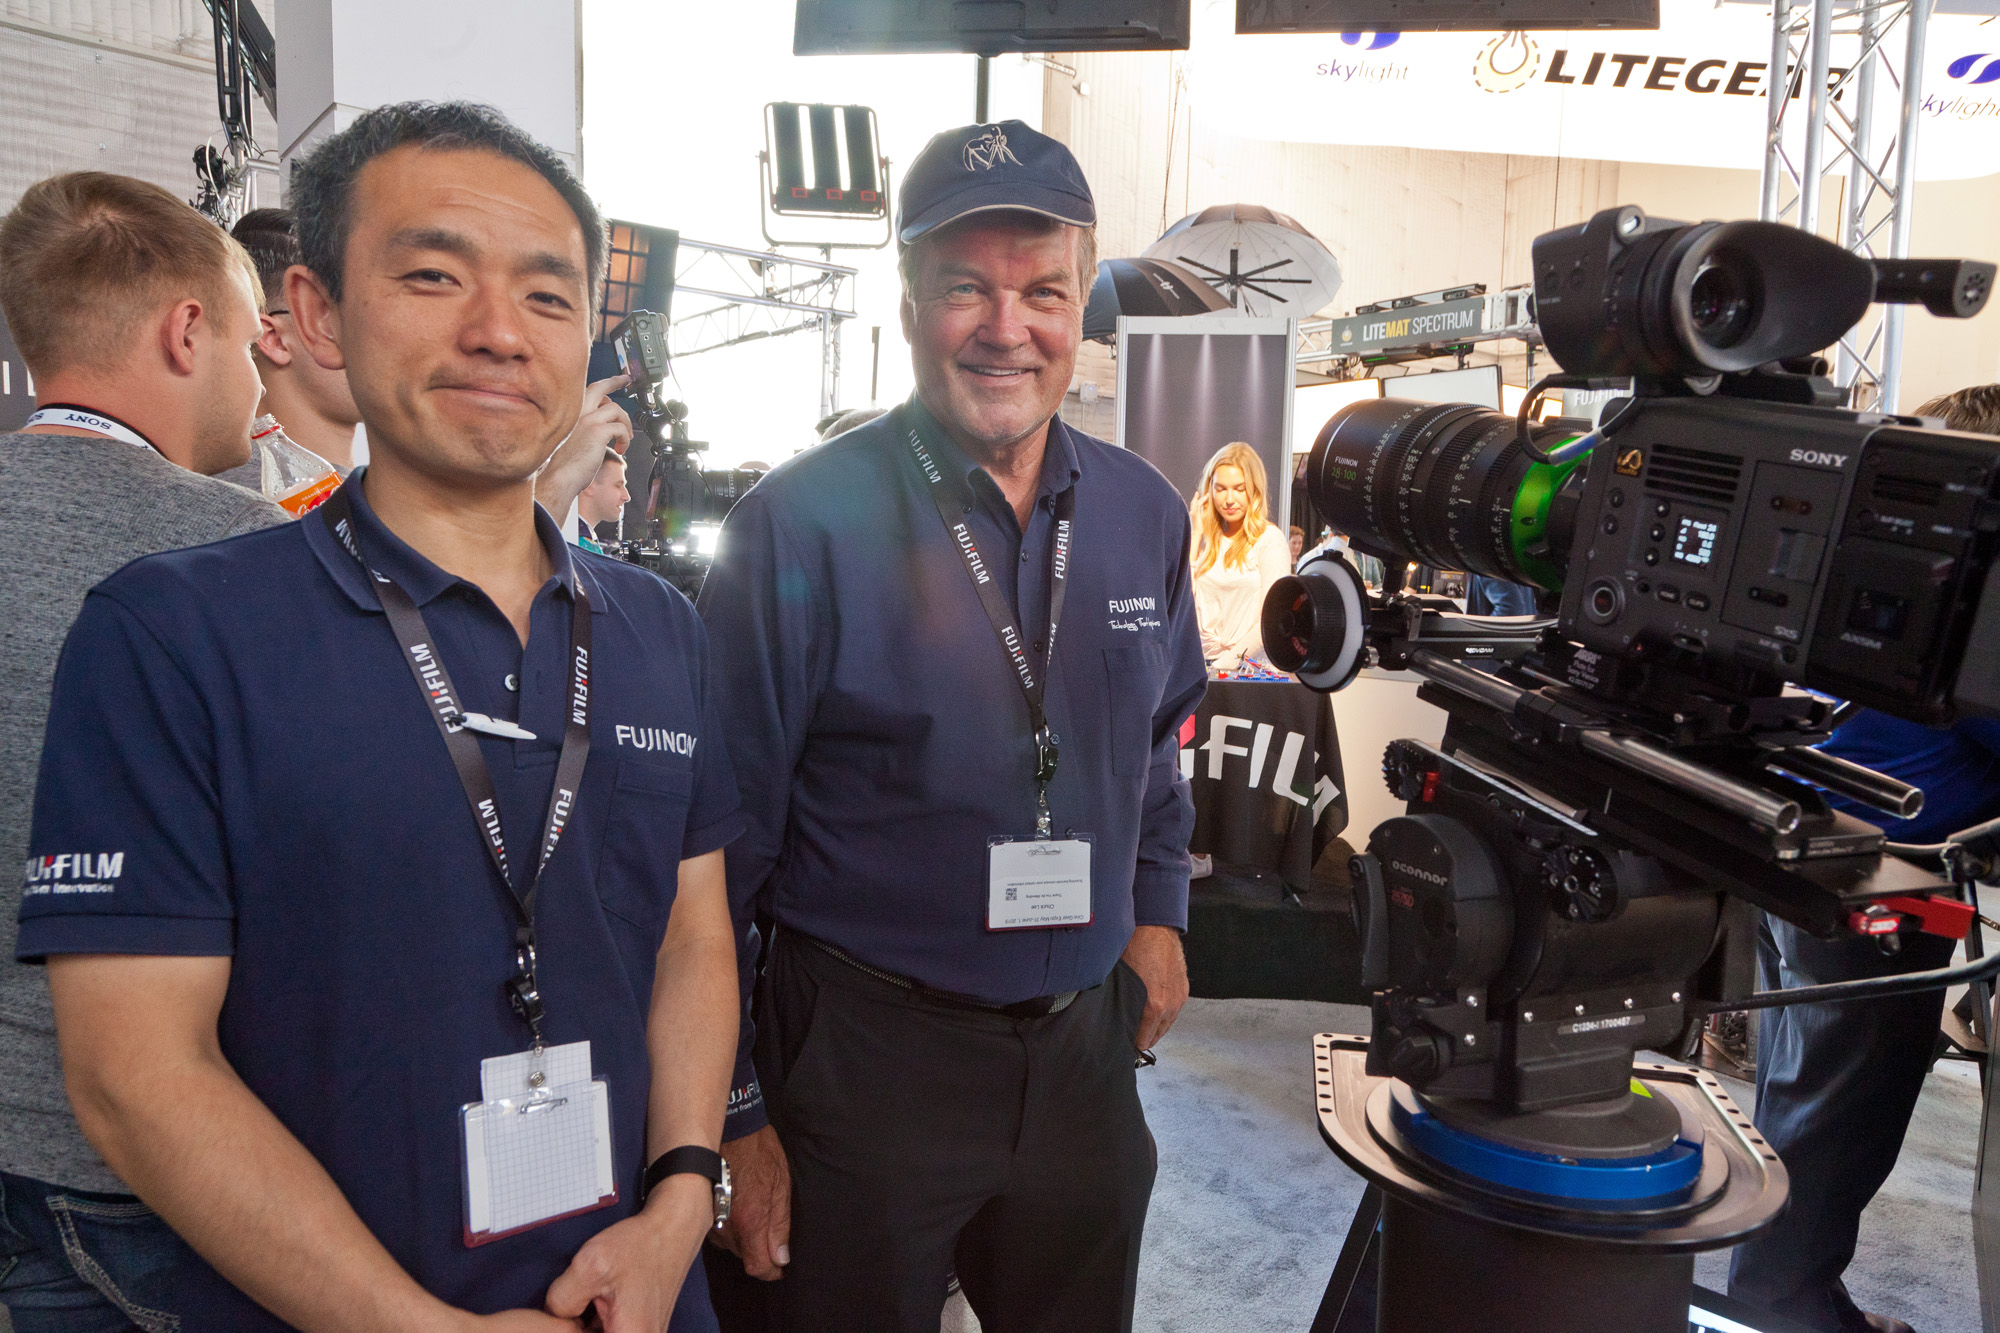 Hideyuki Kasai, Product Manager, Fujinon Europe GmbH & Chuck Lee, Technology Manager, FujiFilm Fujinon. Photo by George Leon/Filmcastlive